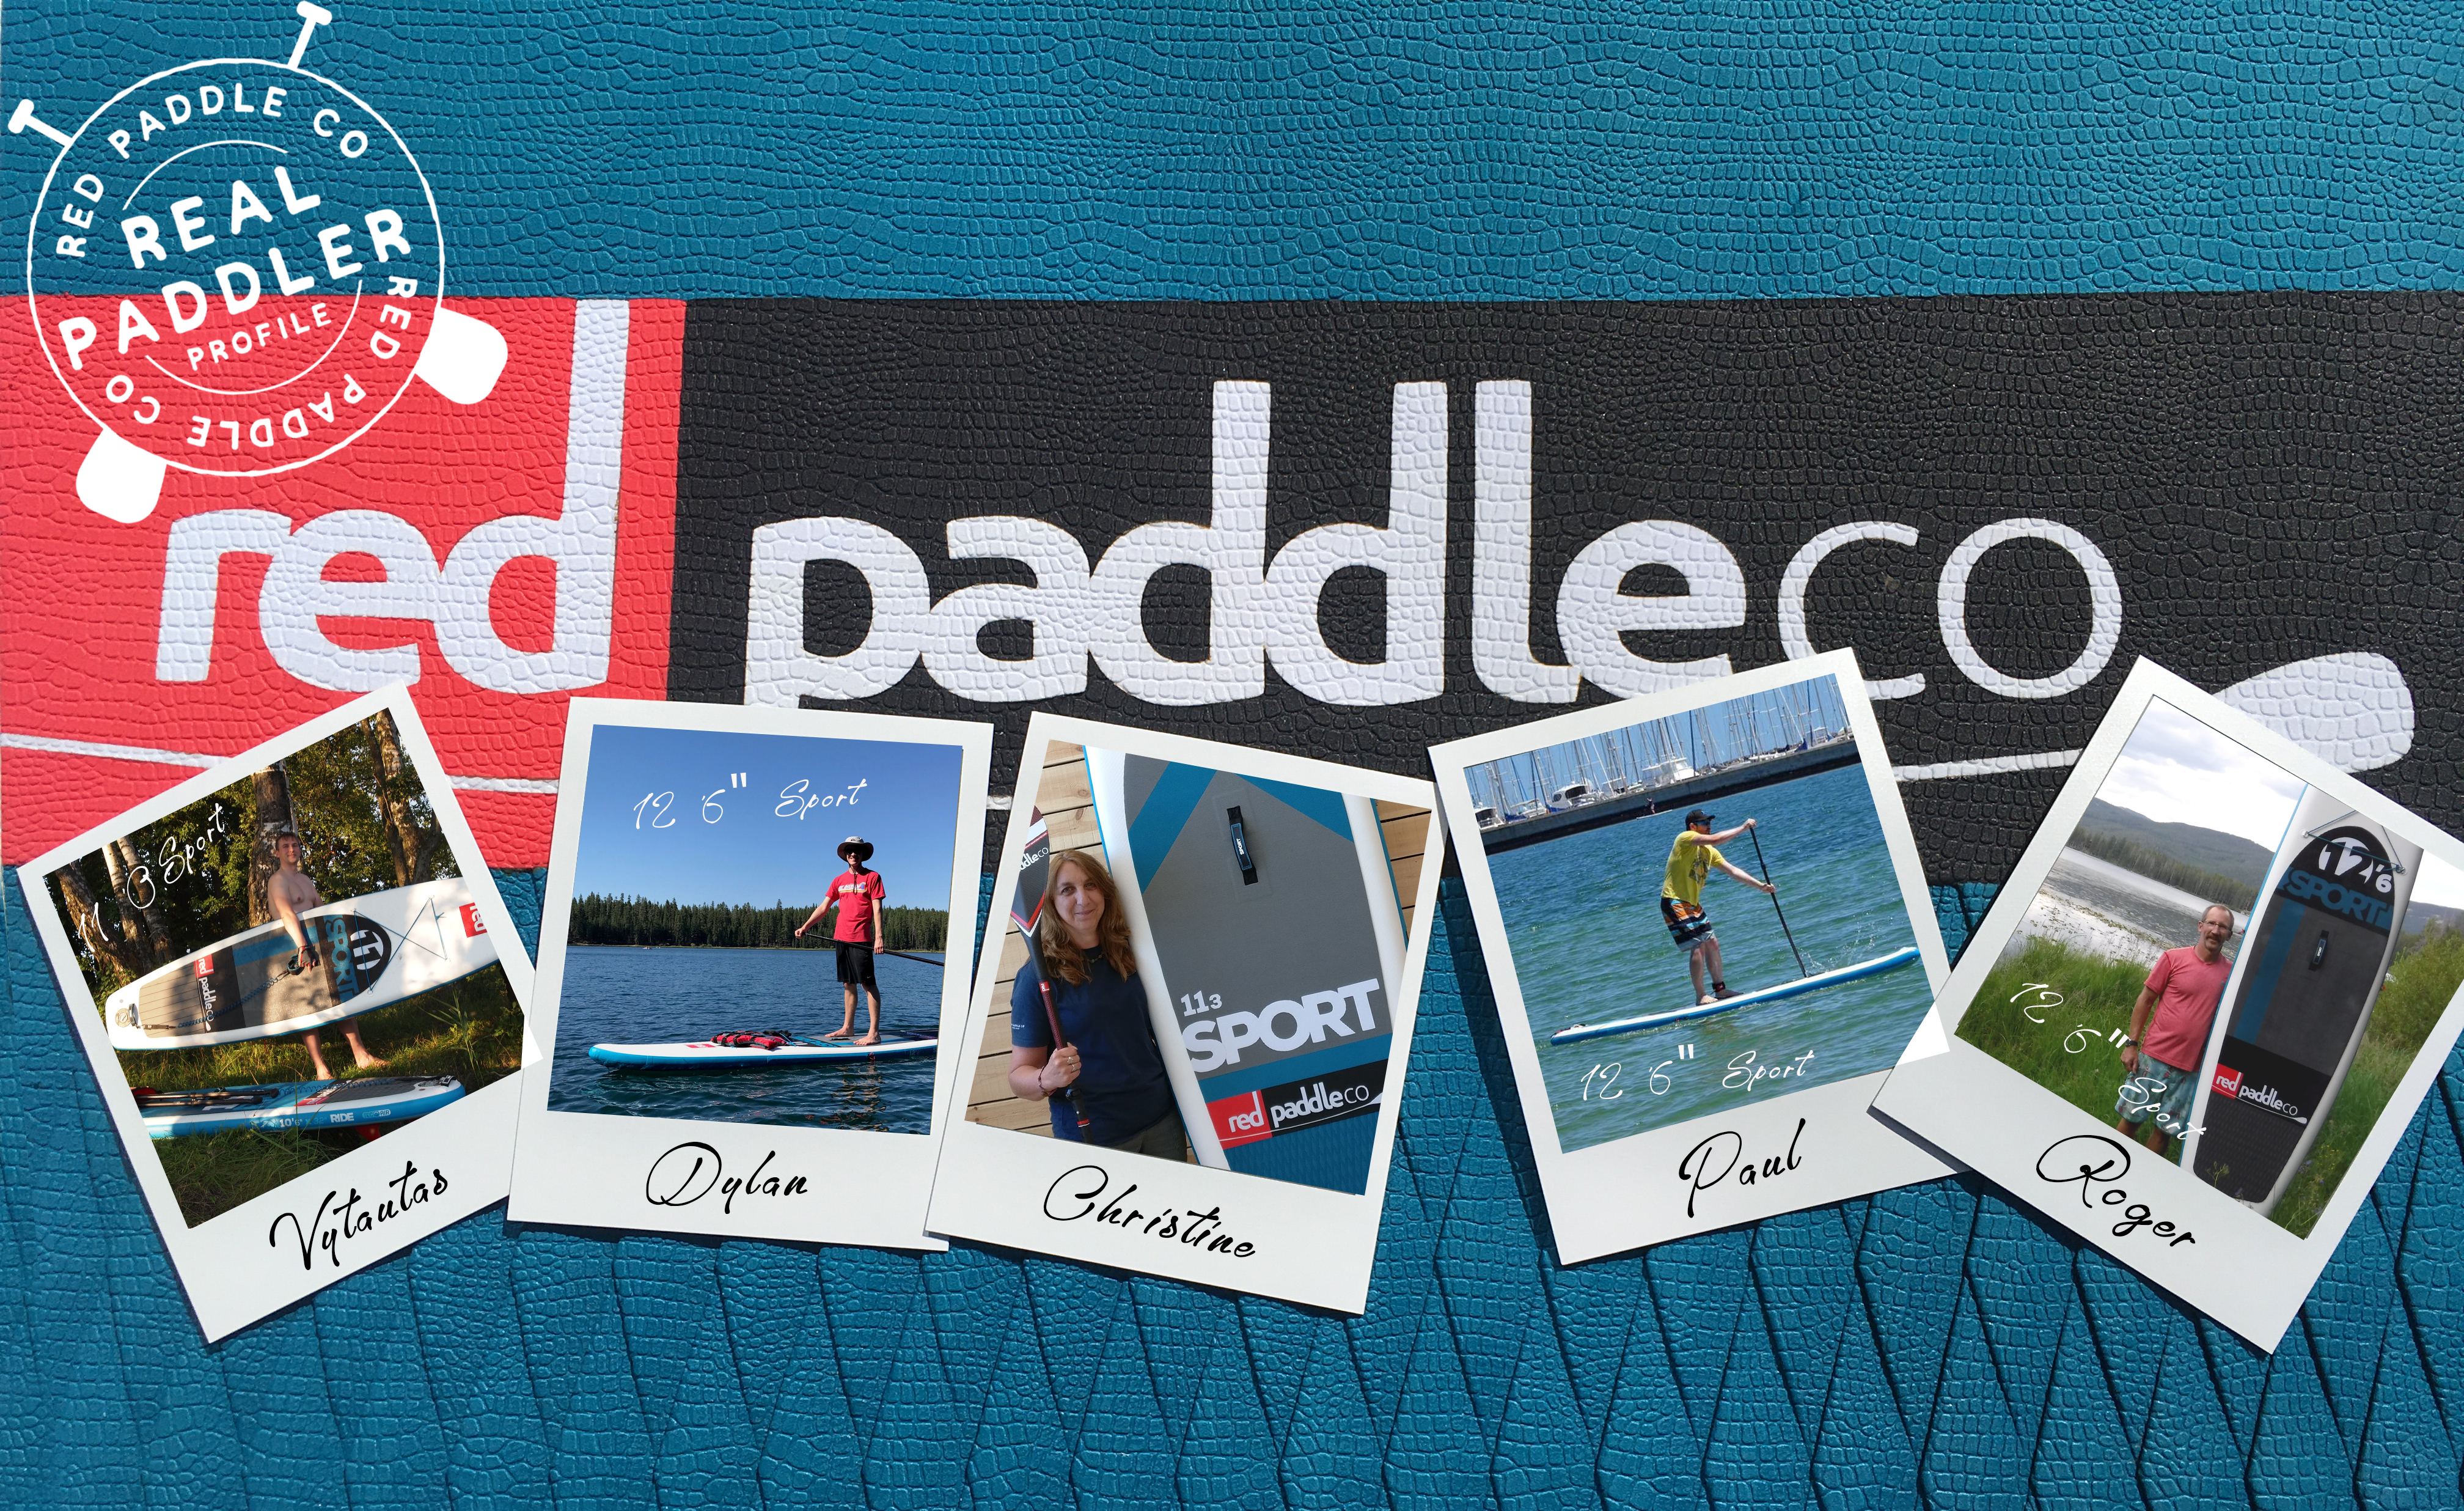 Sport paddle board profiles